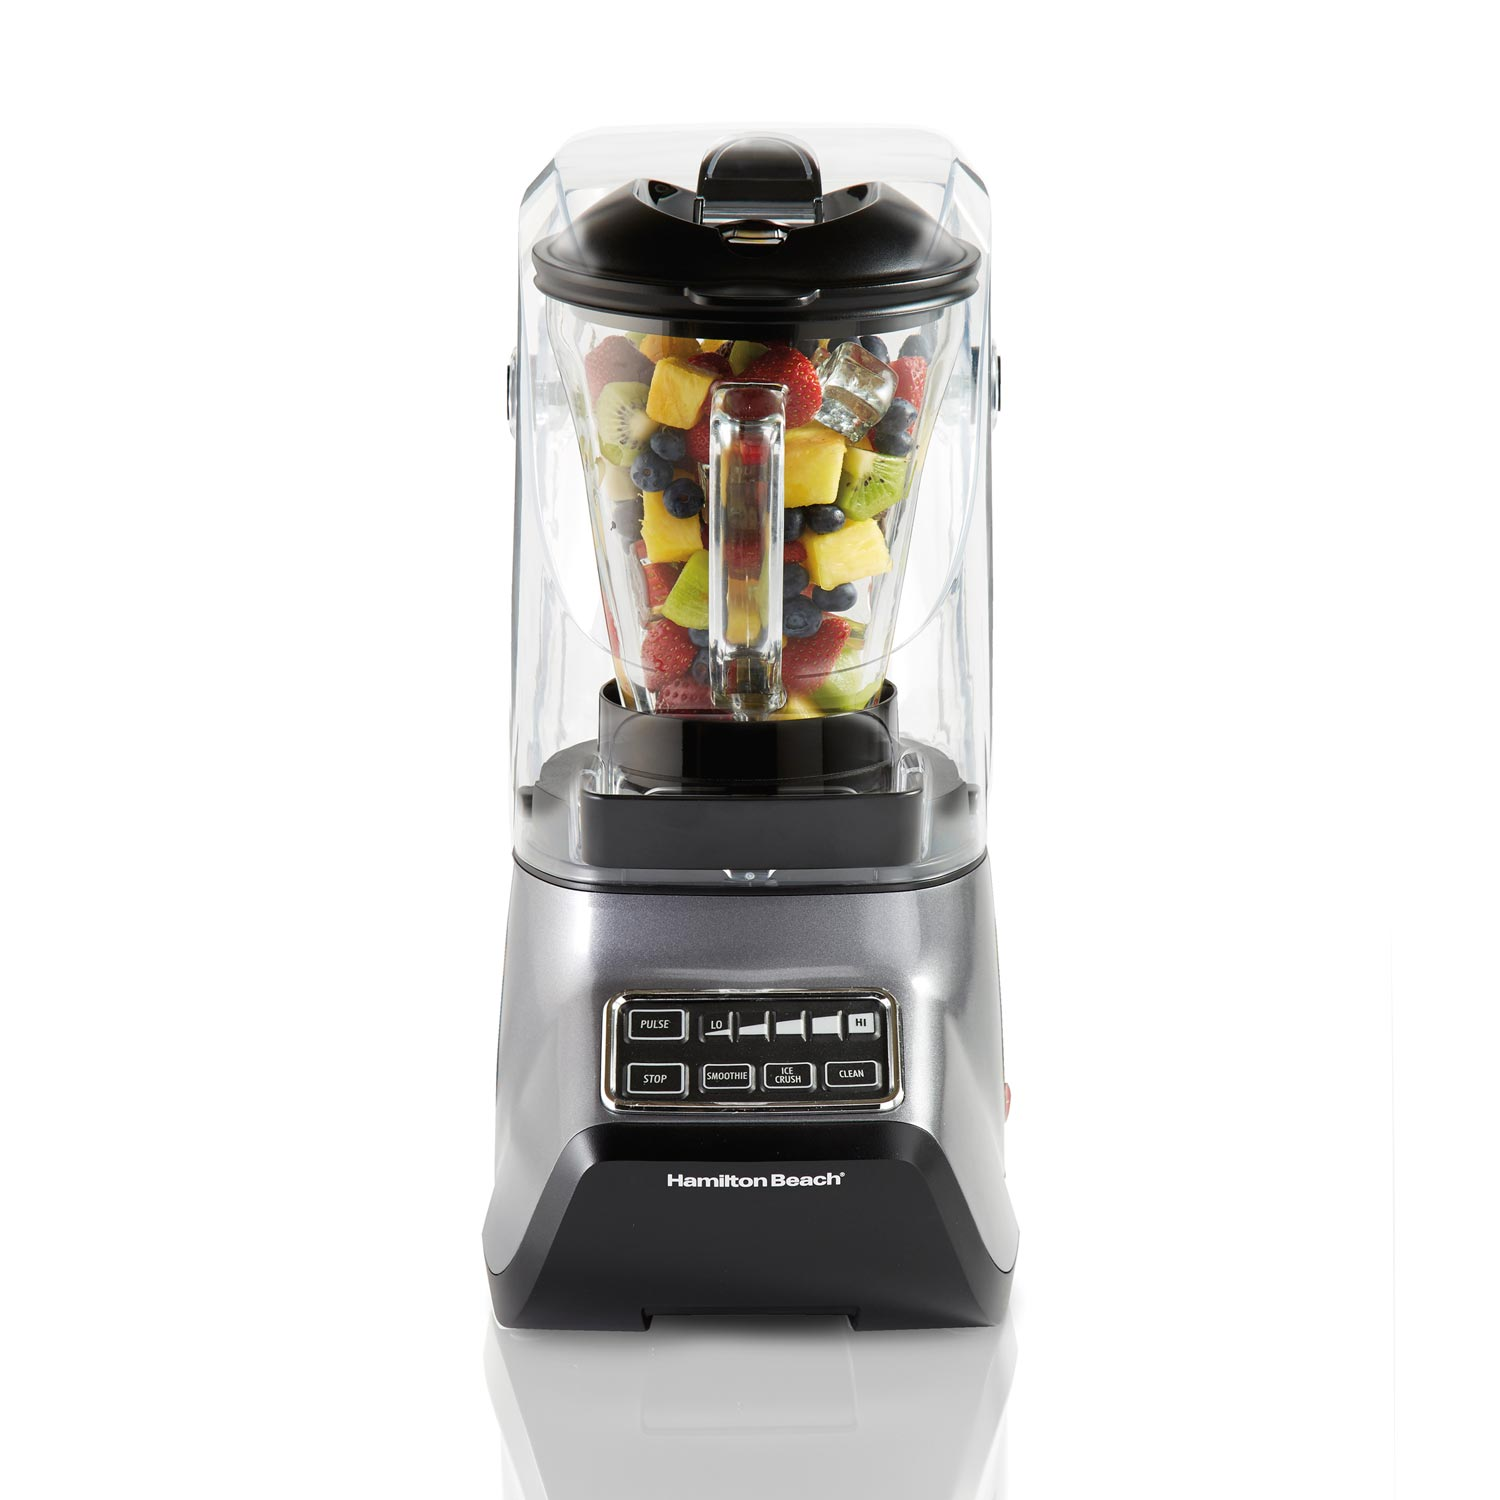 The 53602 Sound Shield 950 is 55% quieter than a traditional blender